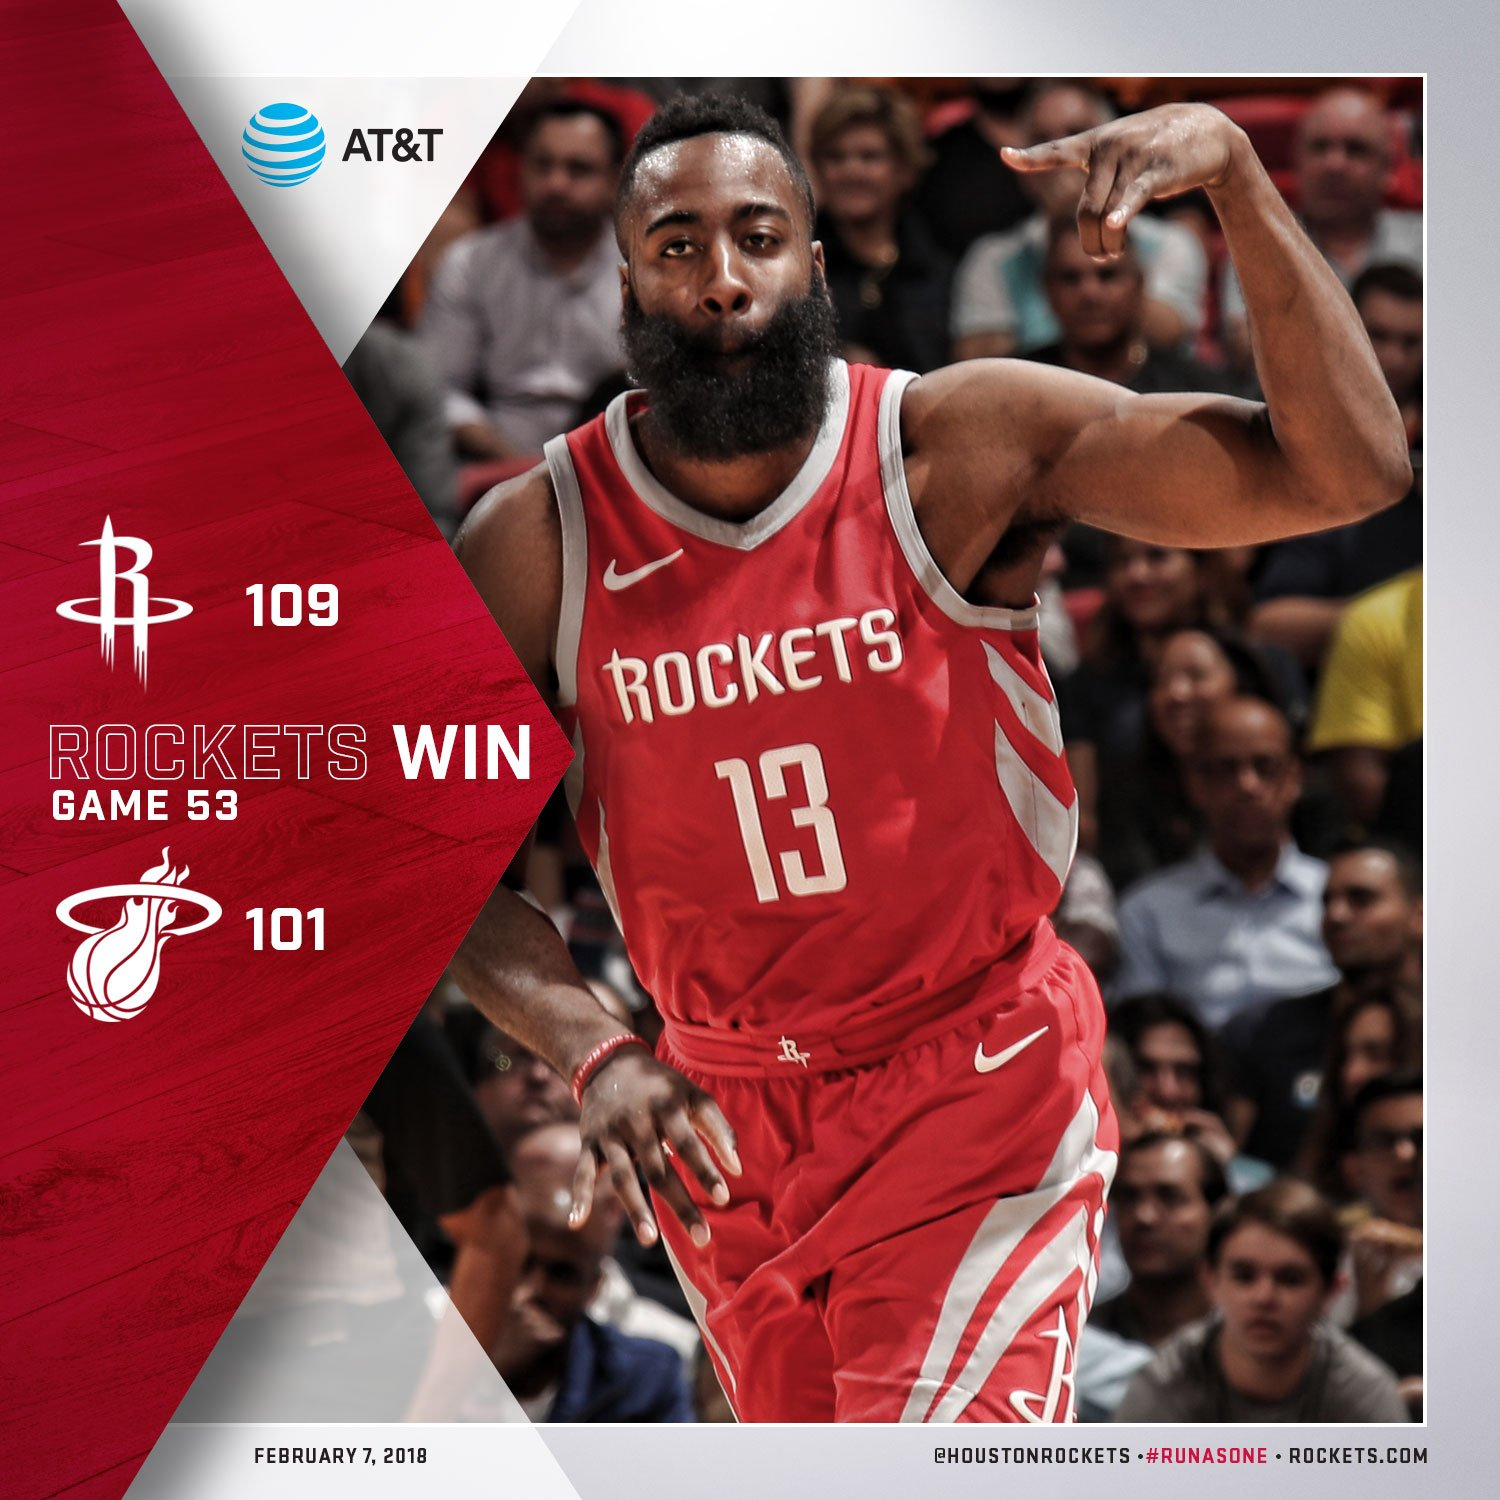 Undefeated road trip ✔️  @JHarden13 41pts/6ast @CP3 24pts/7ast https://t.co/f6CHEQbX1T